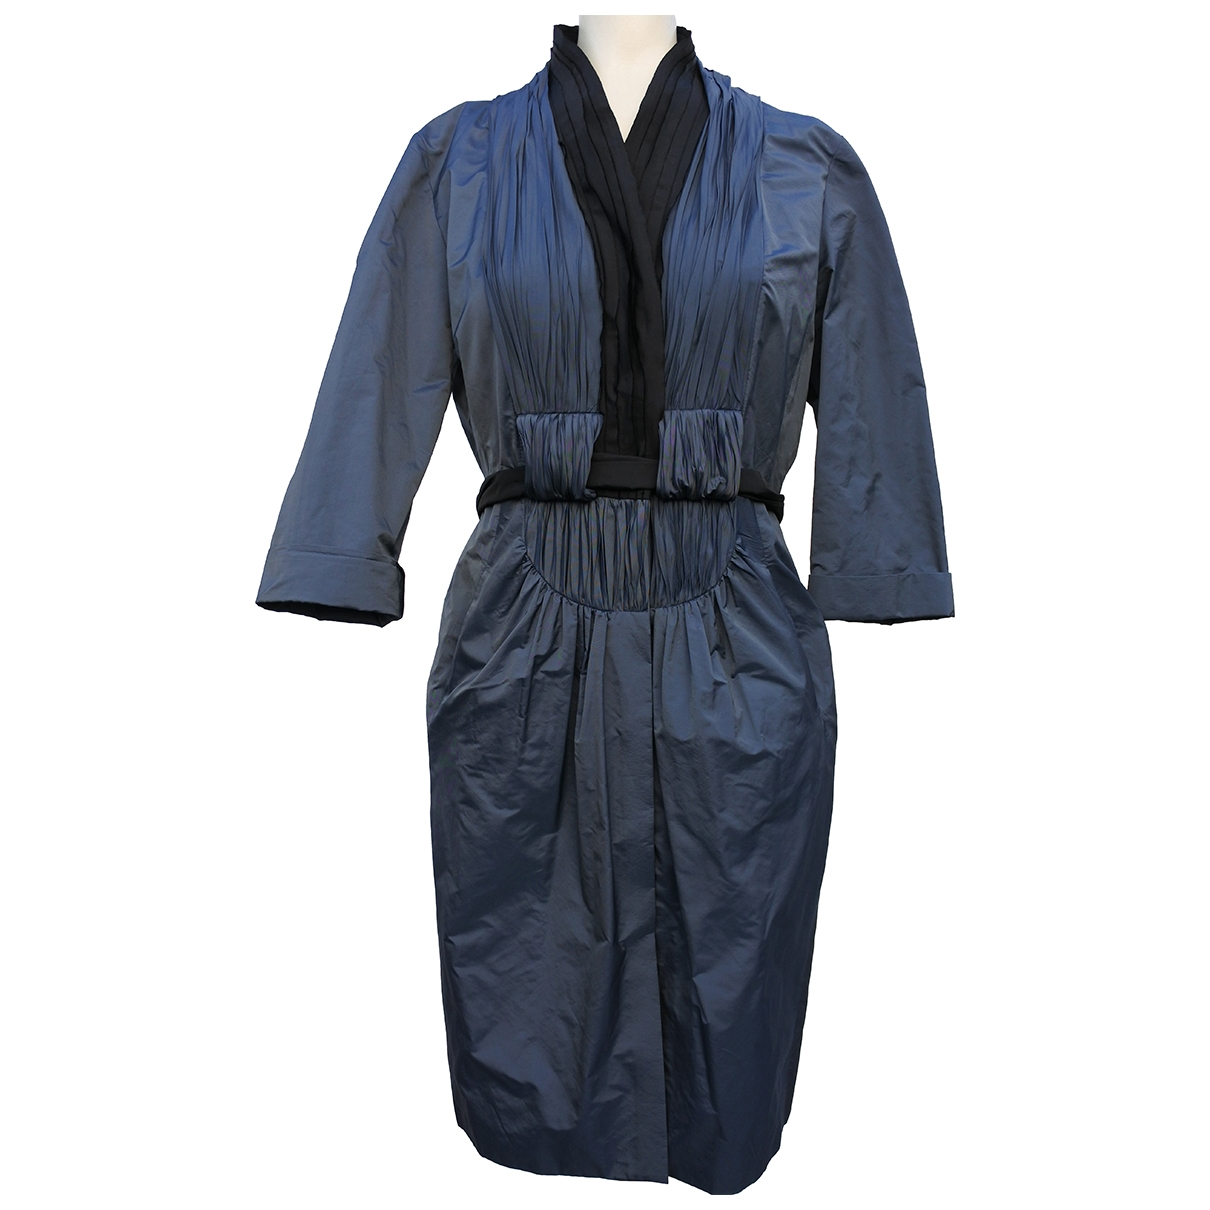 Hoss Intropia \N Kleid in  Blau Polyester